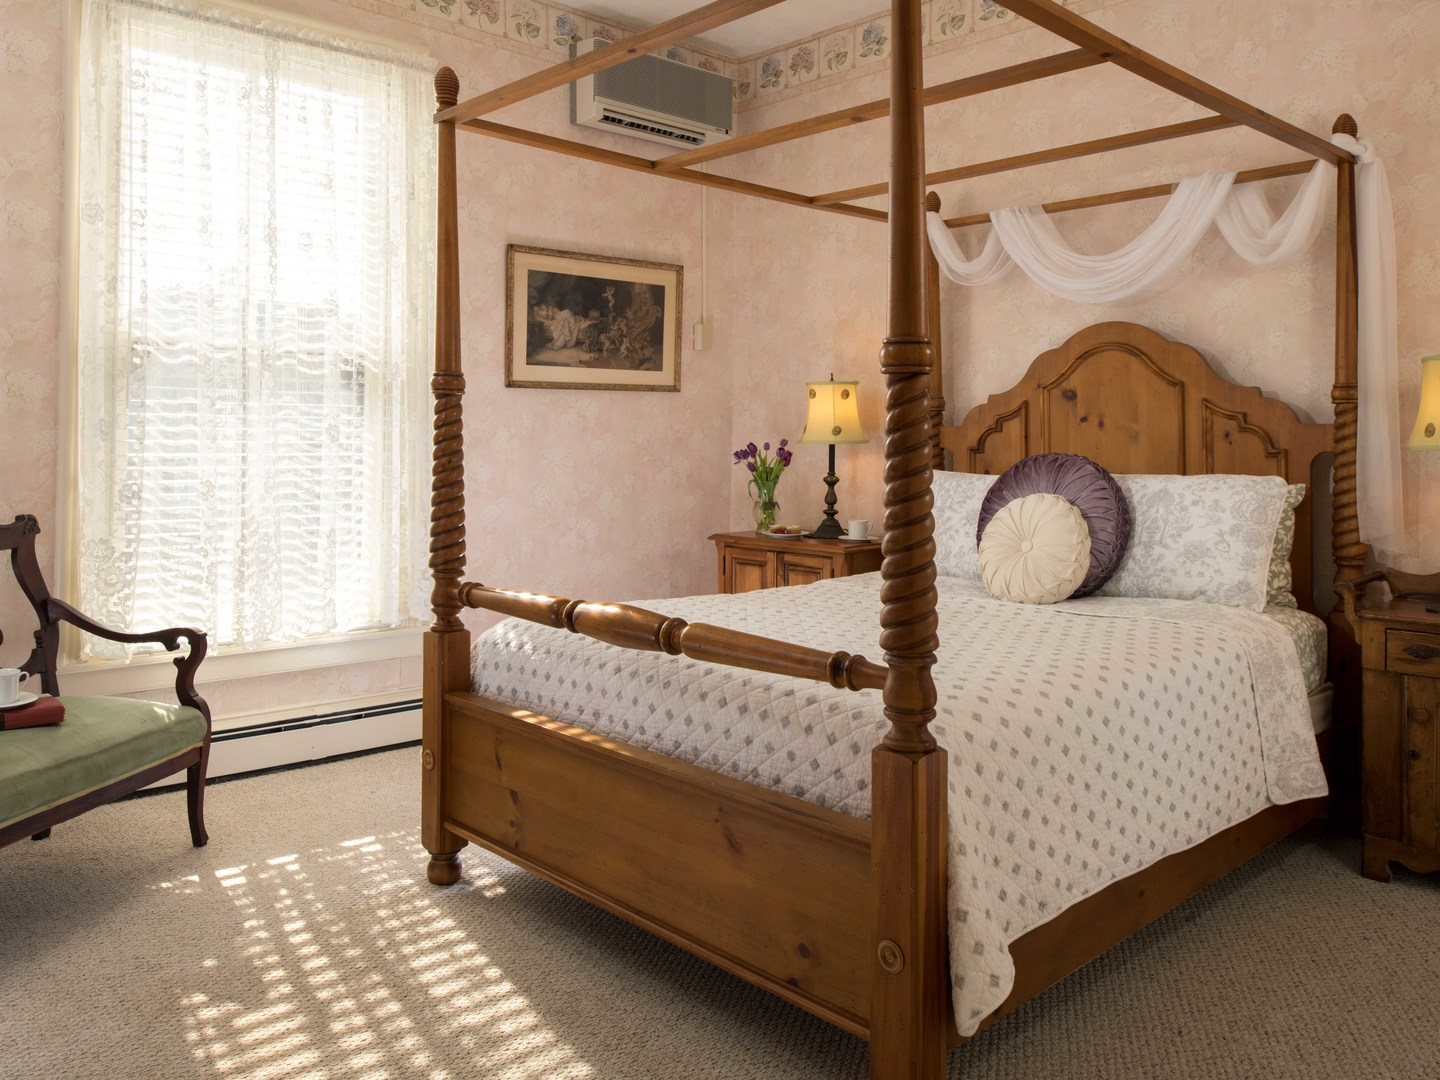 A bedroom with a bed in a room at Mooring Bed & Breakfast.